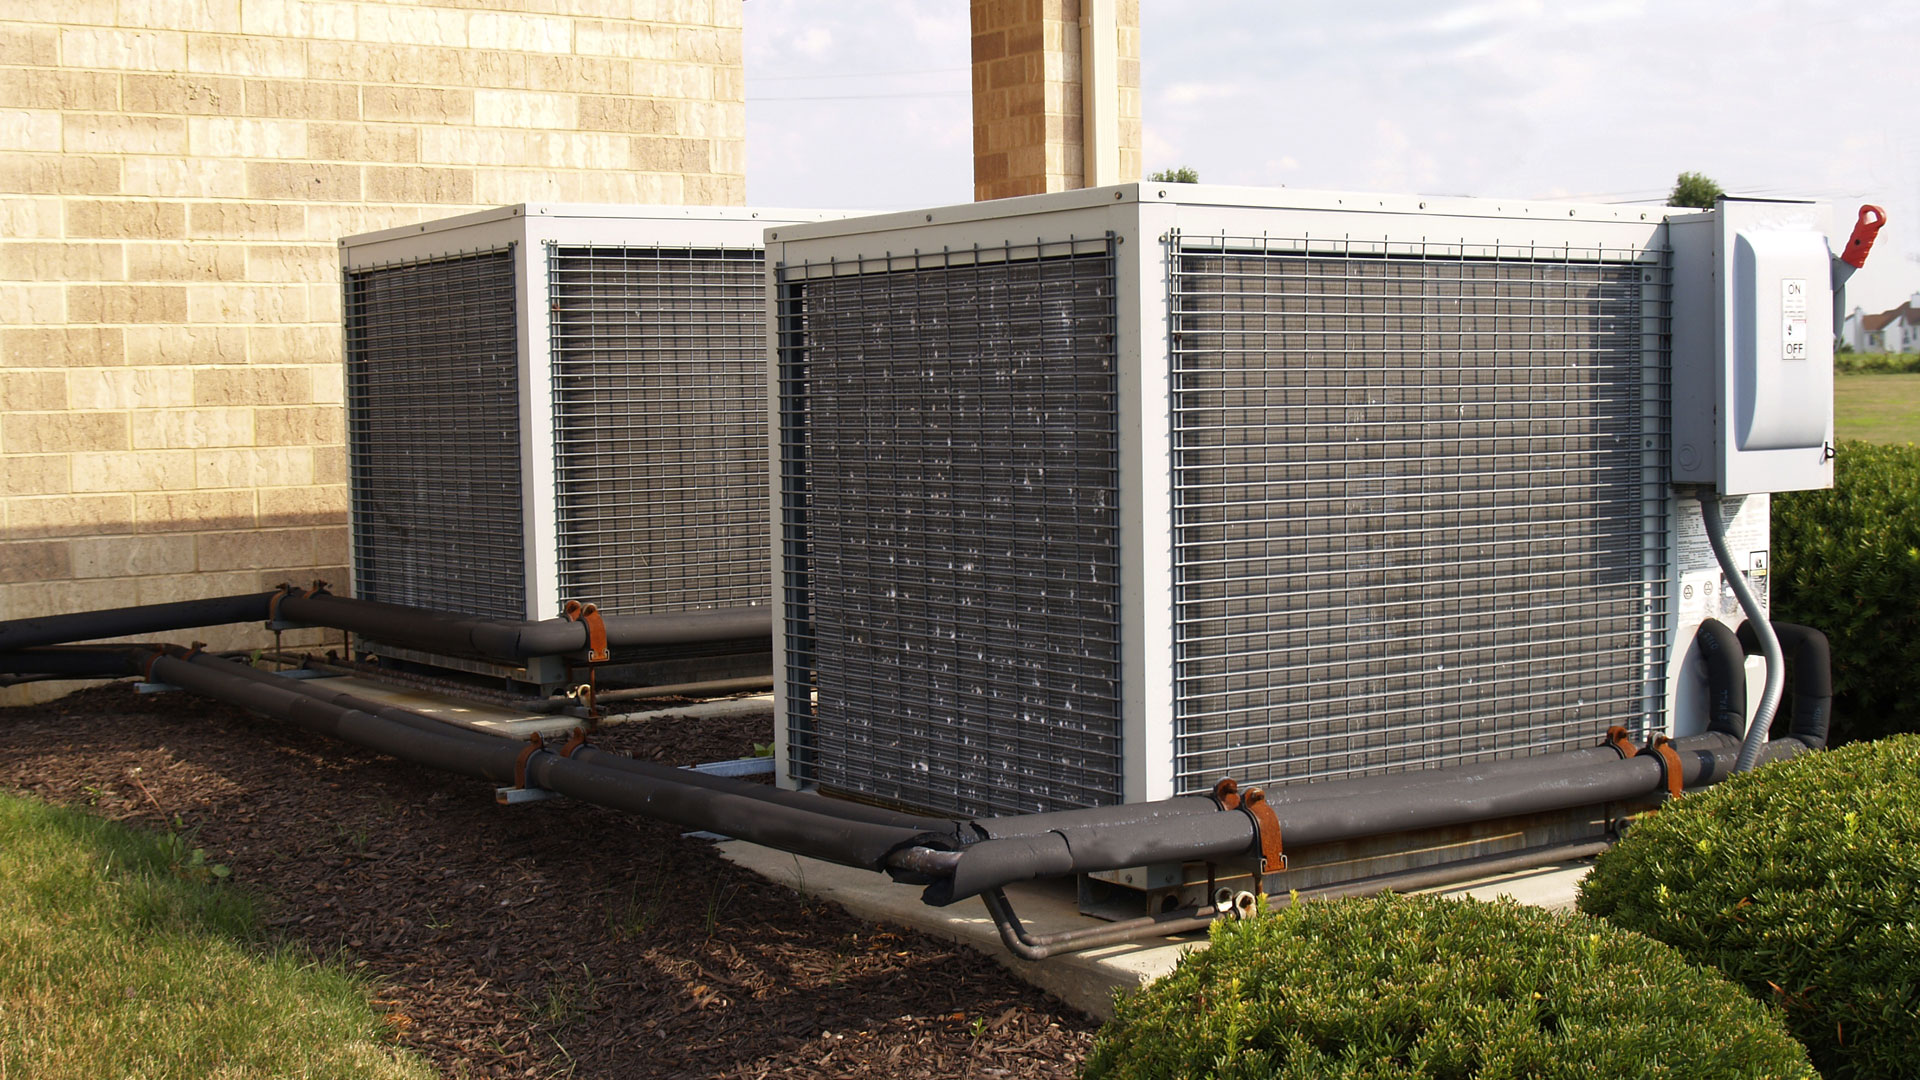 Marshfield Residential HVAC